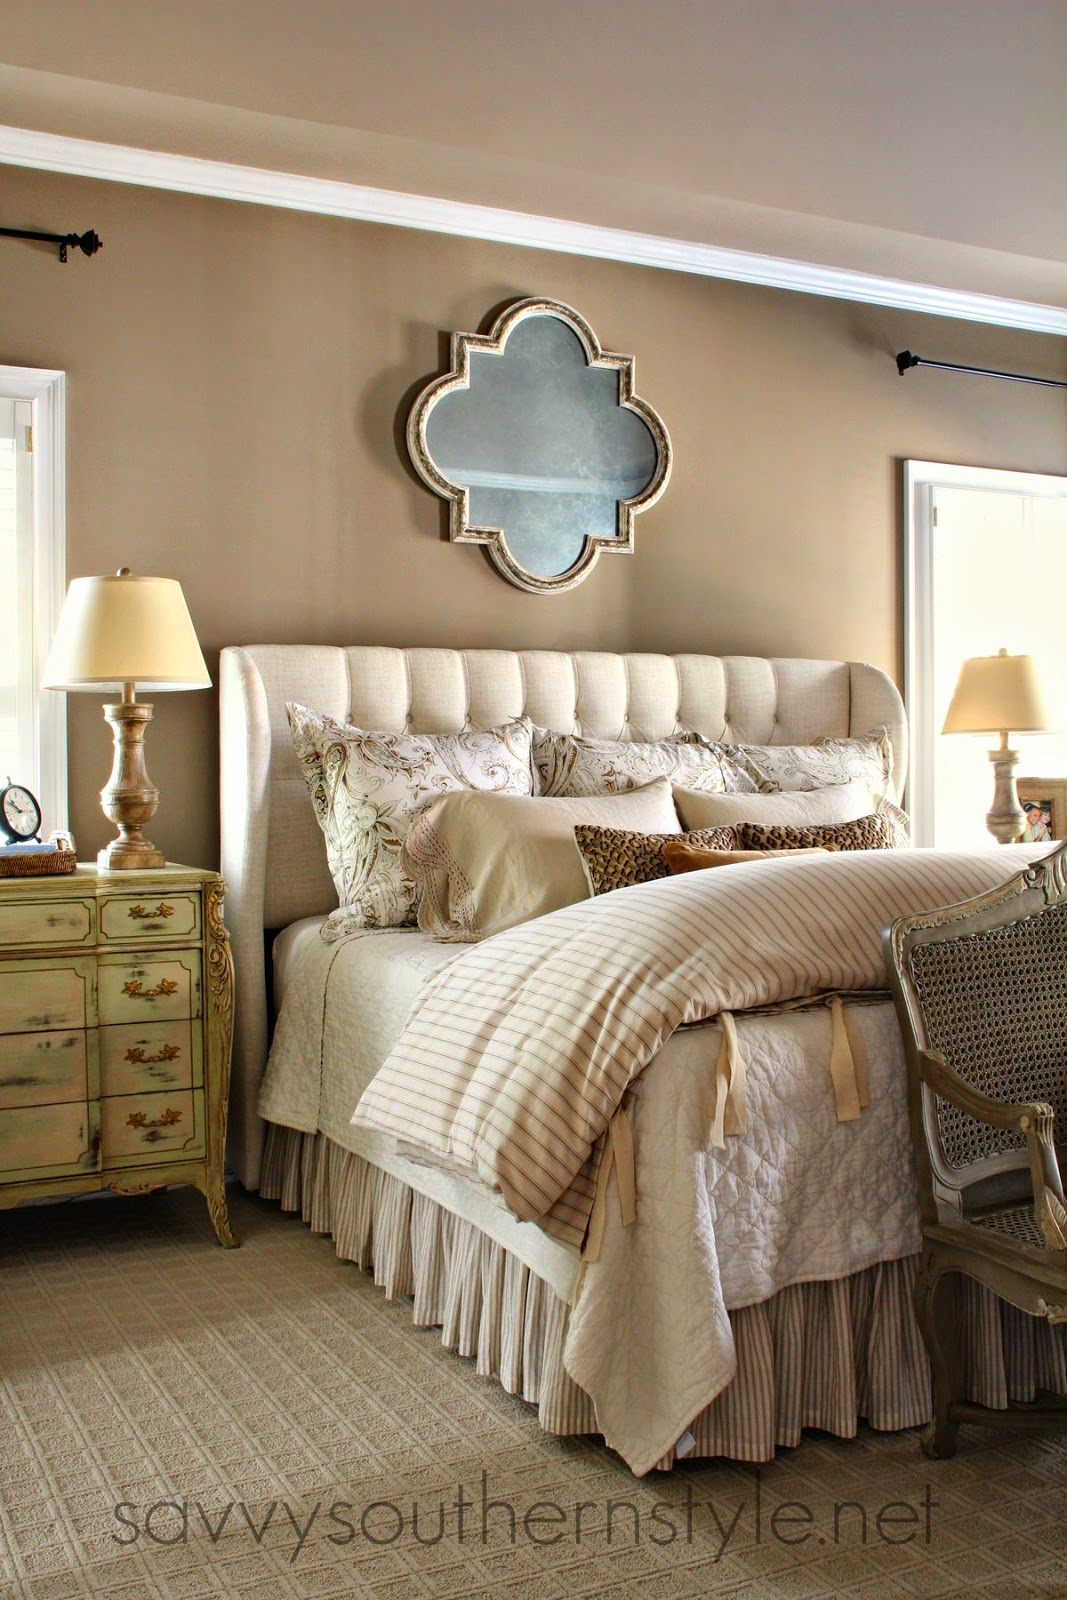 Savvy Southern Style : Master Bedroom Source List